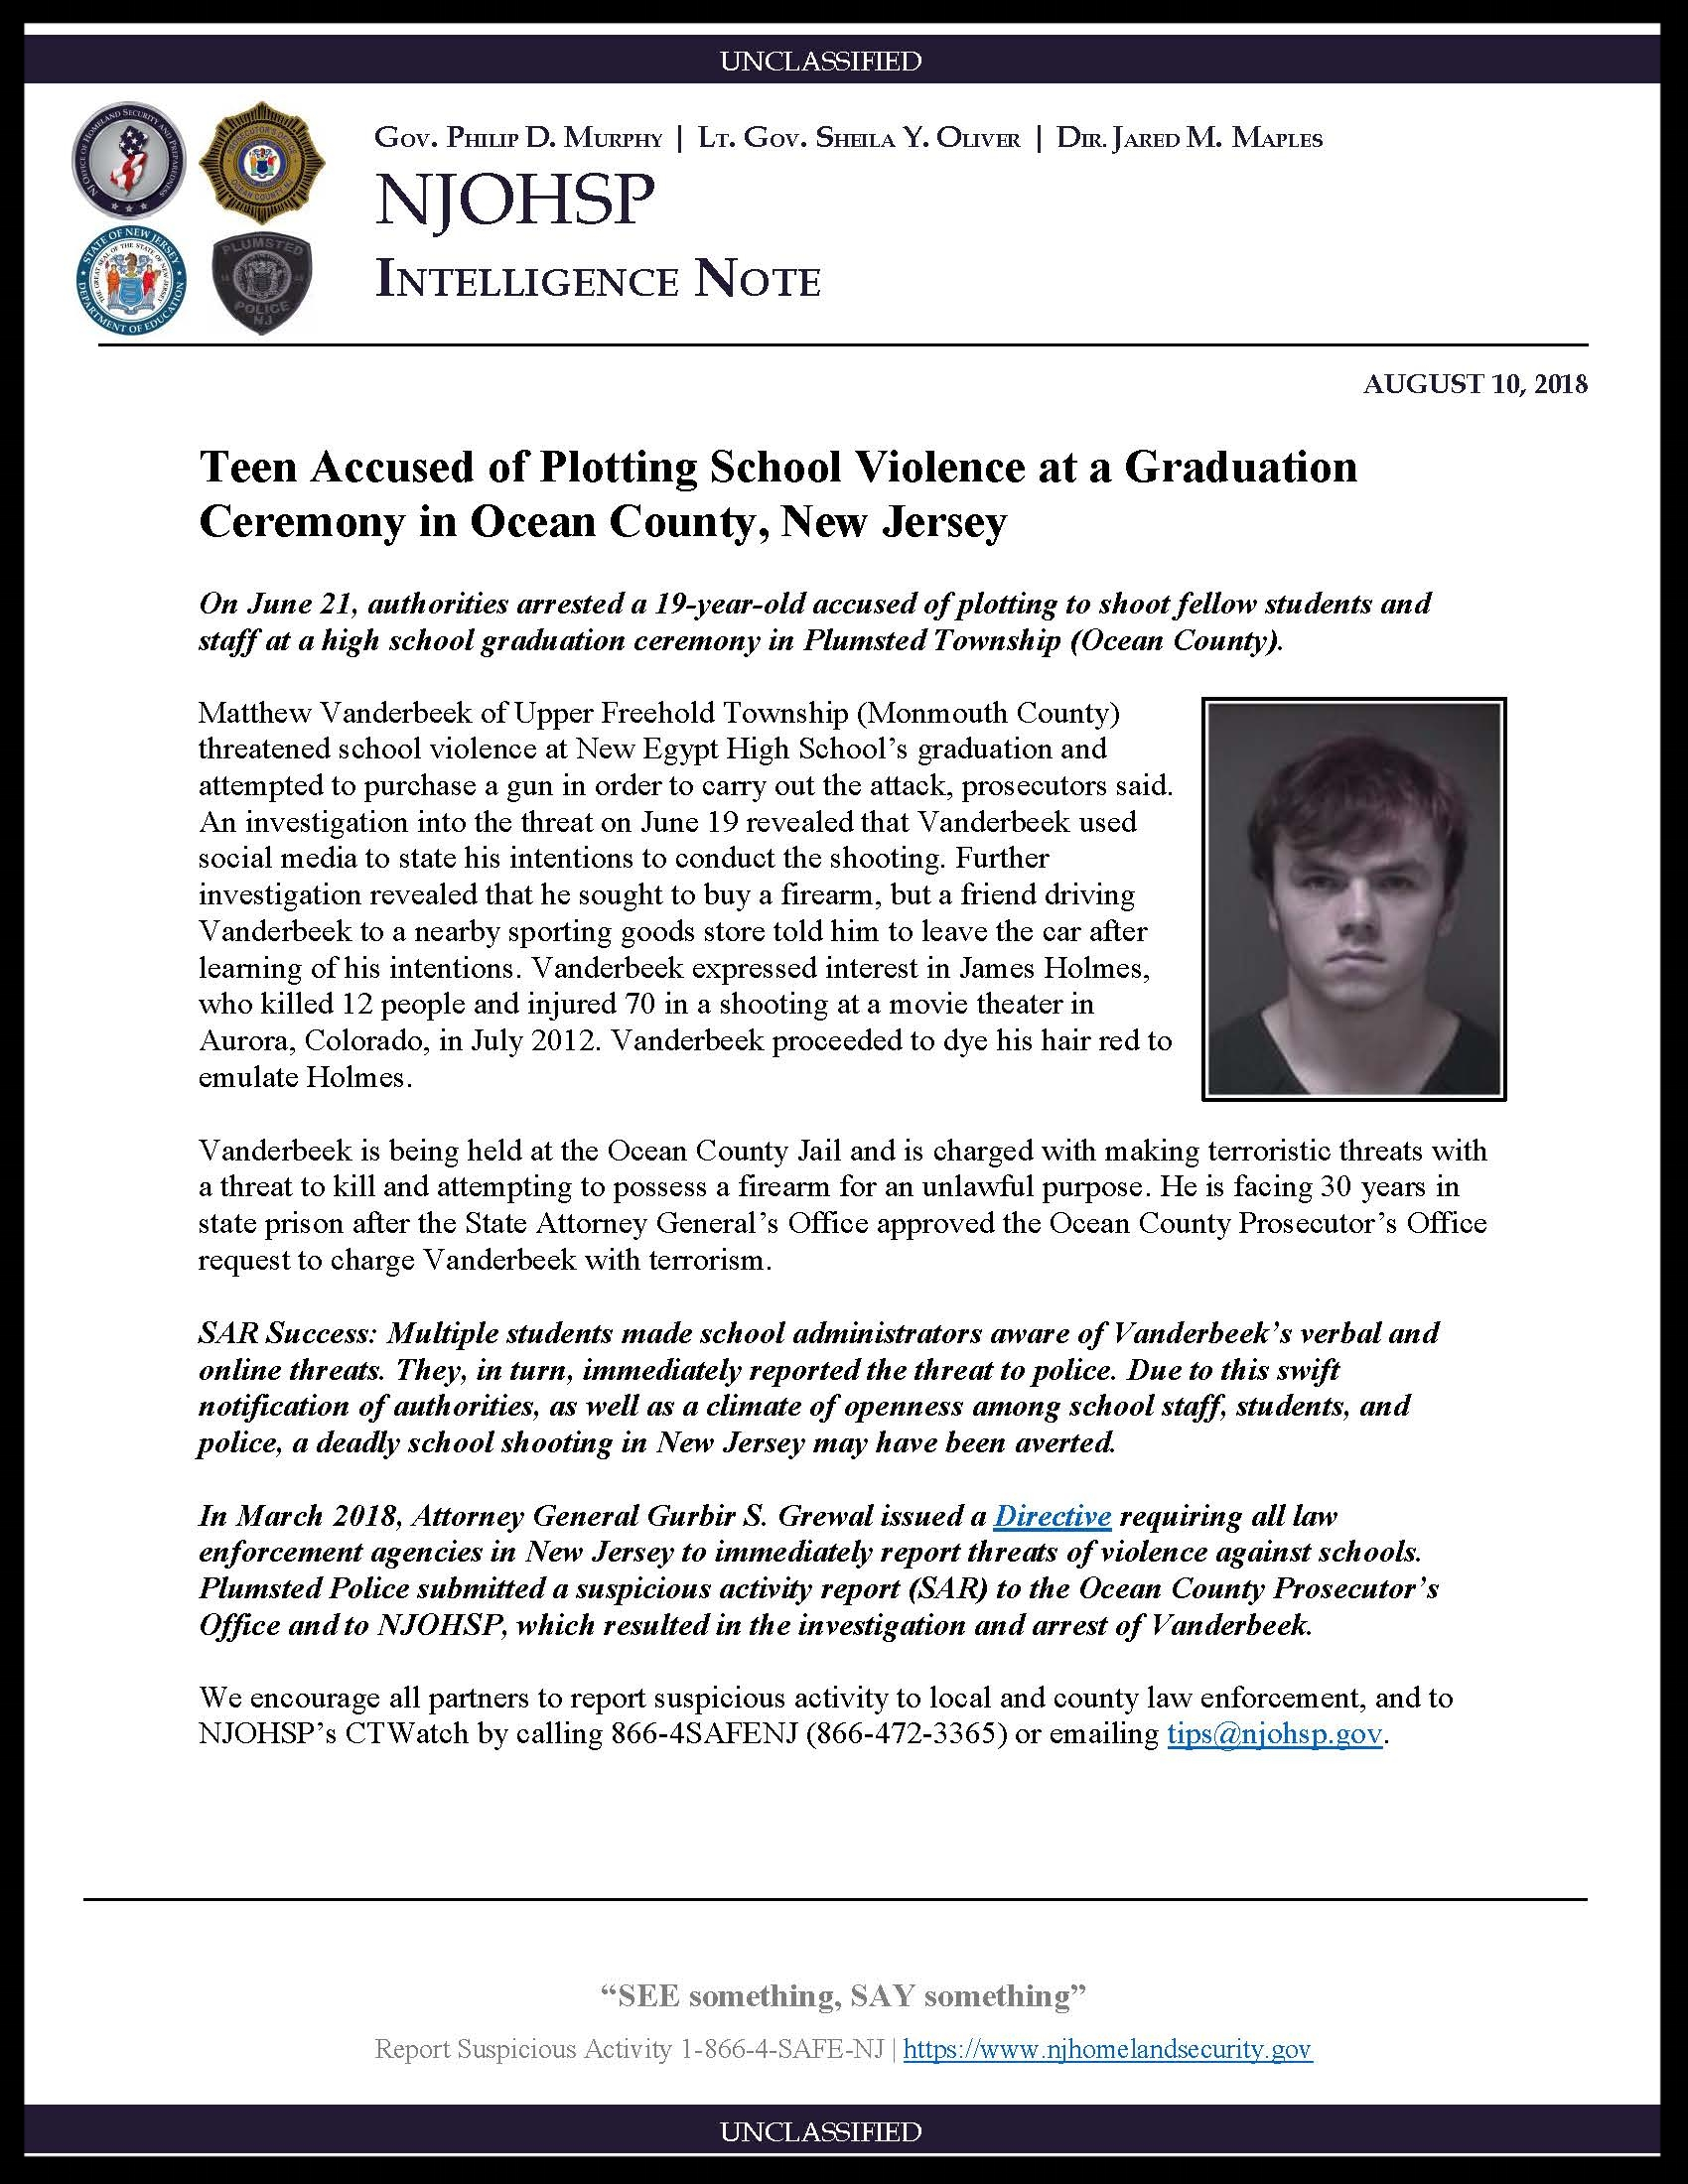 School Violence Plot Averted in Ocean County New Jersey.jpg